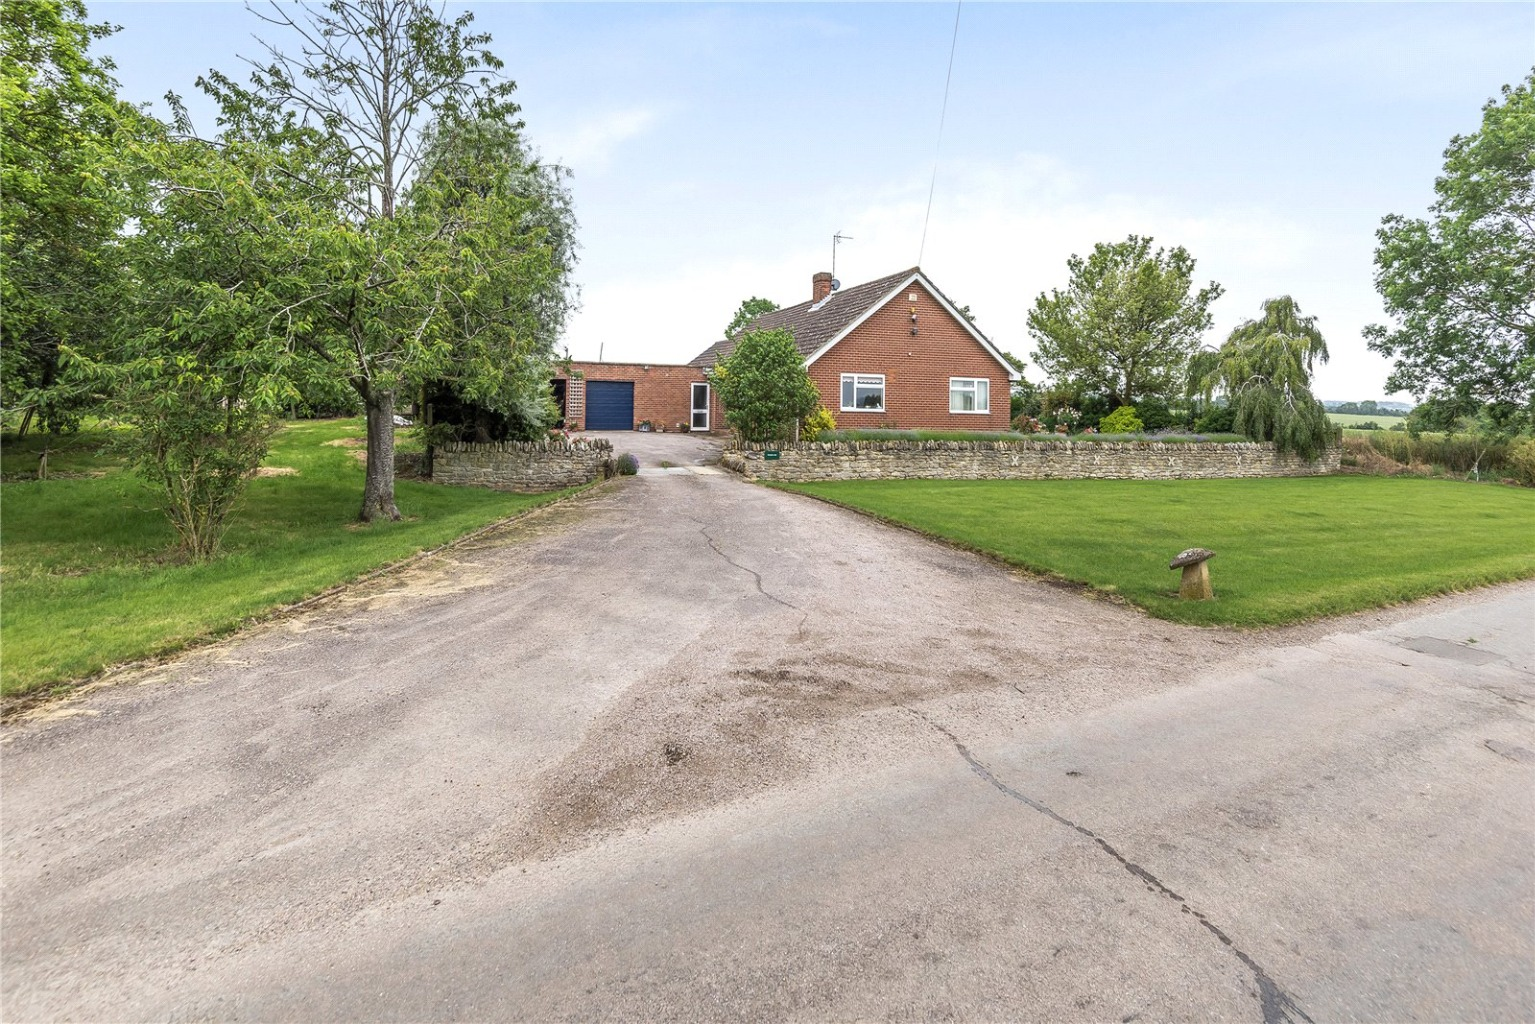 Set in the hamlet of Wintringham on the eastern outskirts of St Neots, this detached three-bedroom bungalow sits on a plot of over two acres and is surrounded by open countryside.